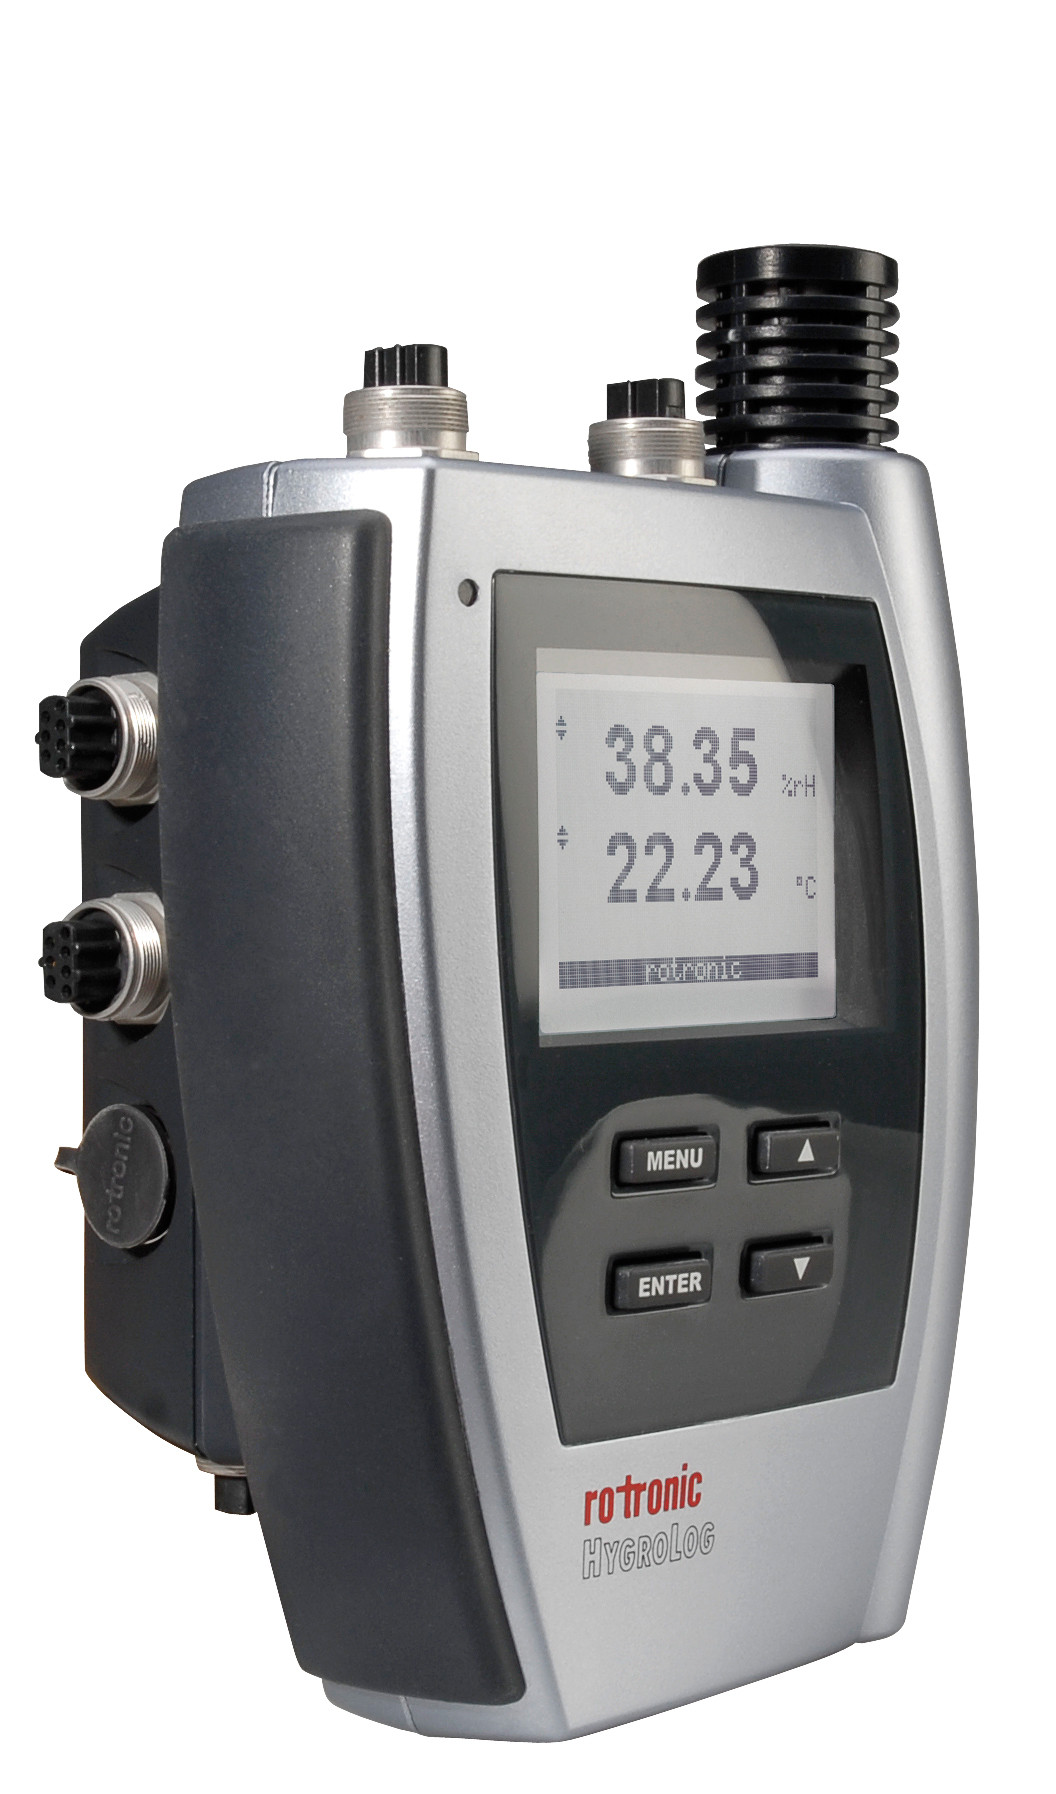 HygroLog - HL-NT3-D - High-end data logger